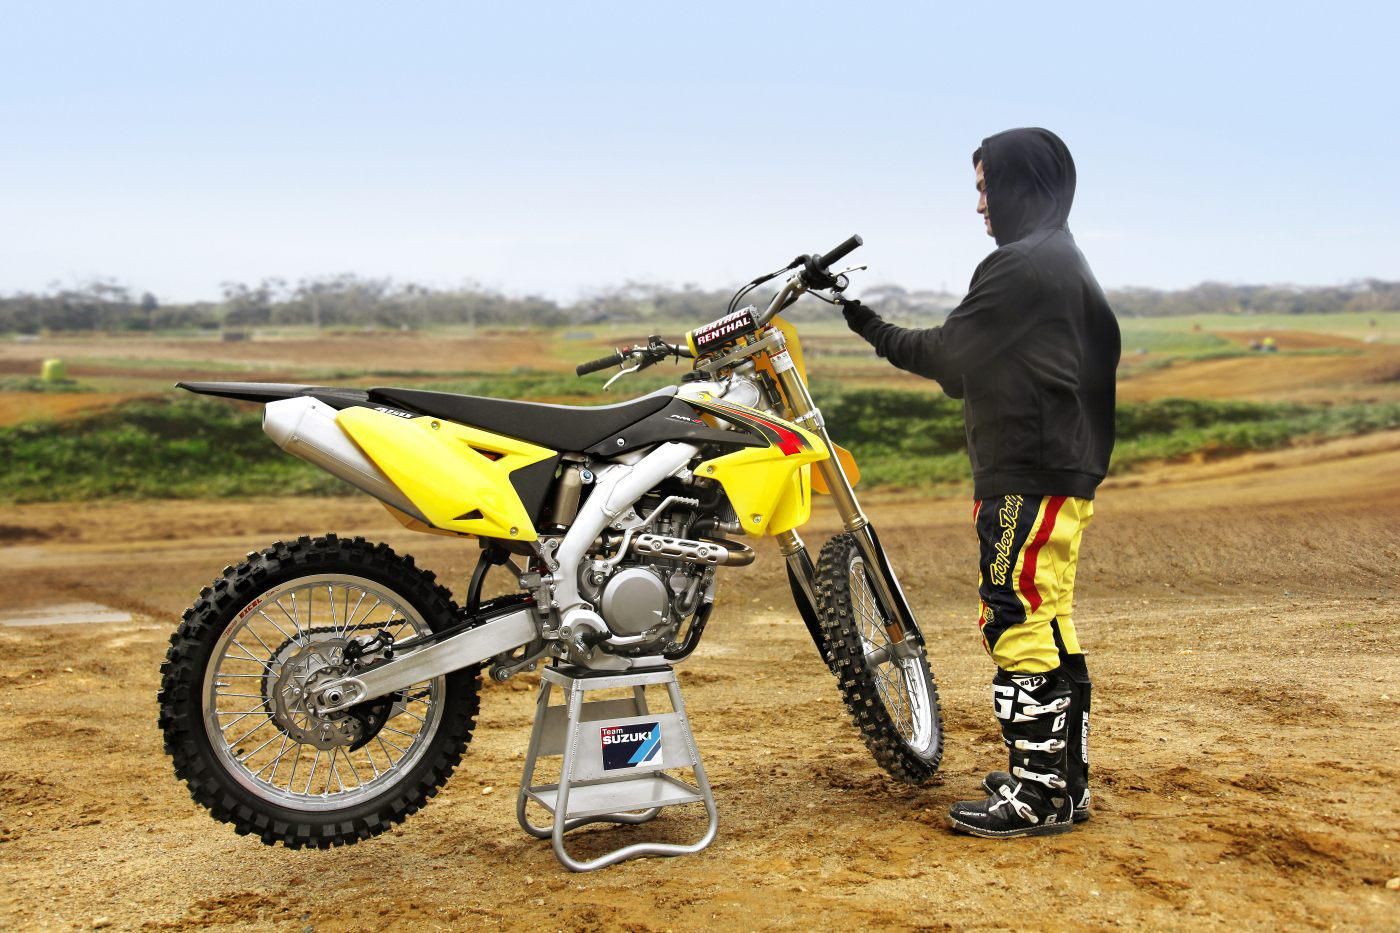 suzuki rm z450 2015 motorrad fotos motorrad bilder. Black Bedroom Furniture Sets. Home Design Ideas